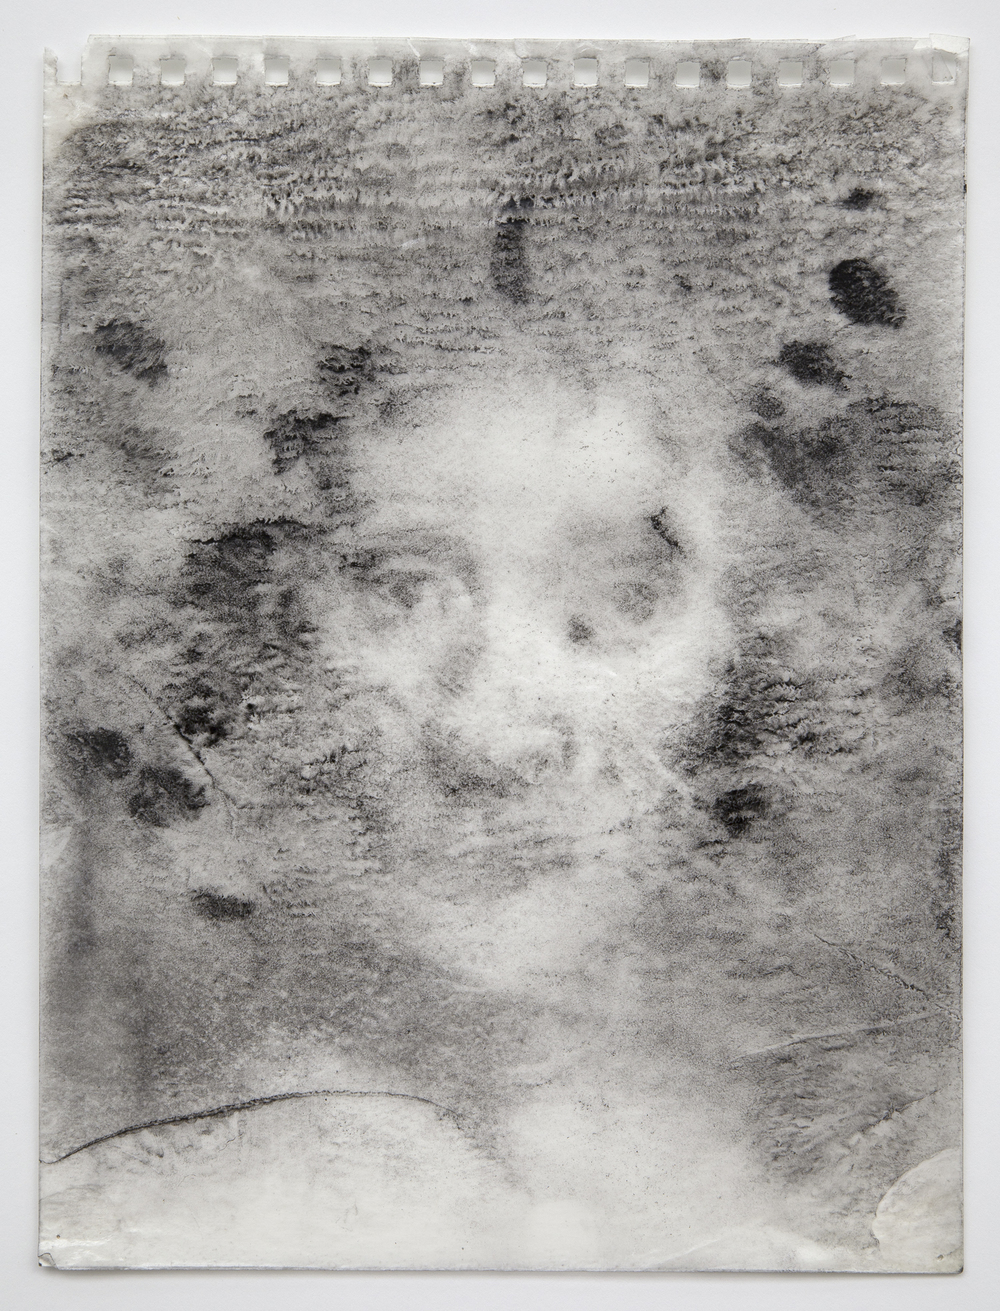 Interleaf Drawing (after Rembrandt), 2012